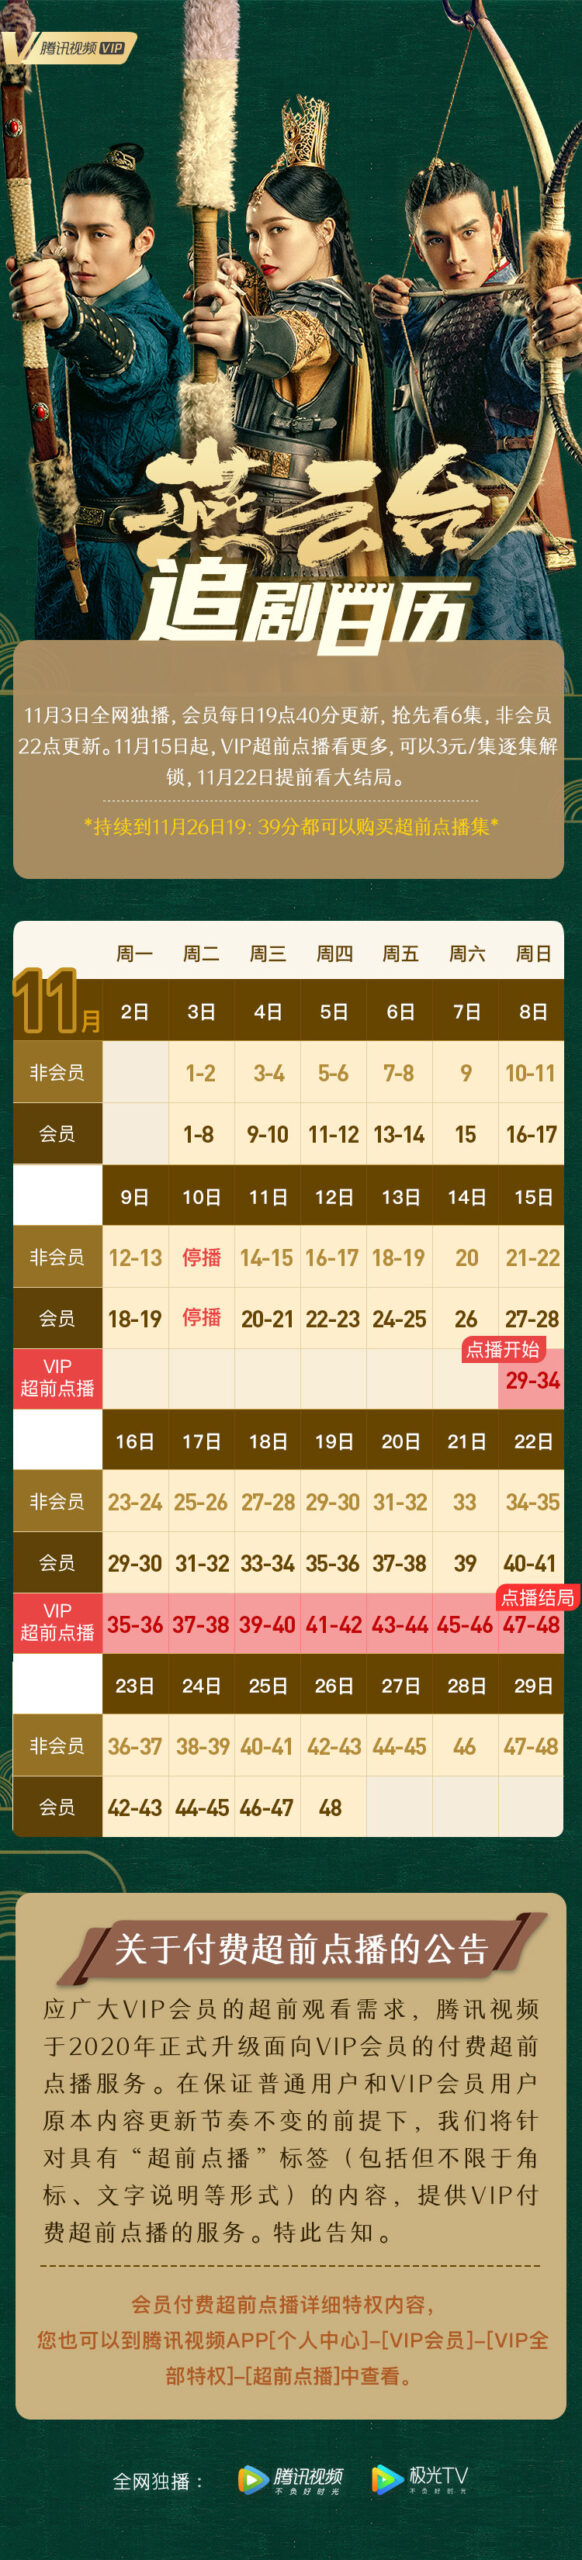 The Legend Of Xiao Chuo Chinese Drama Airing Calendar